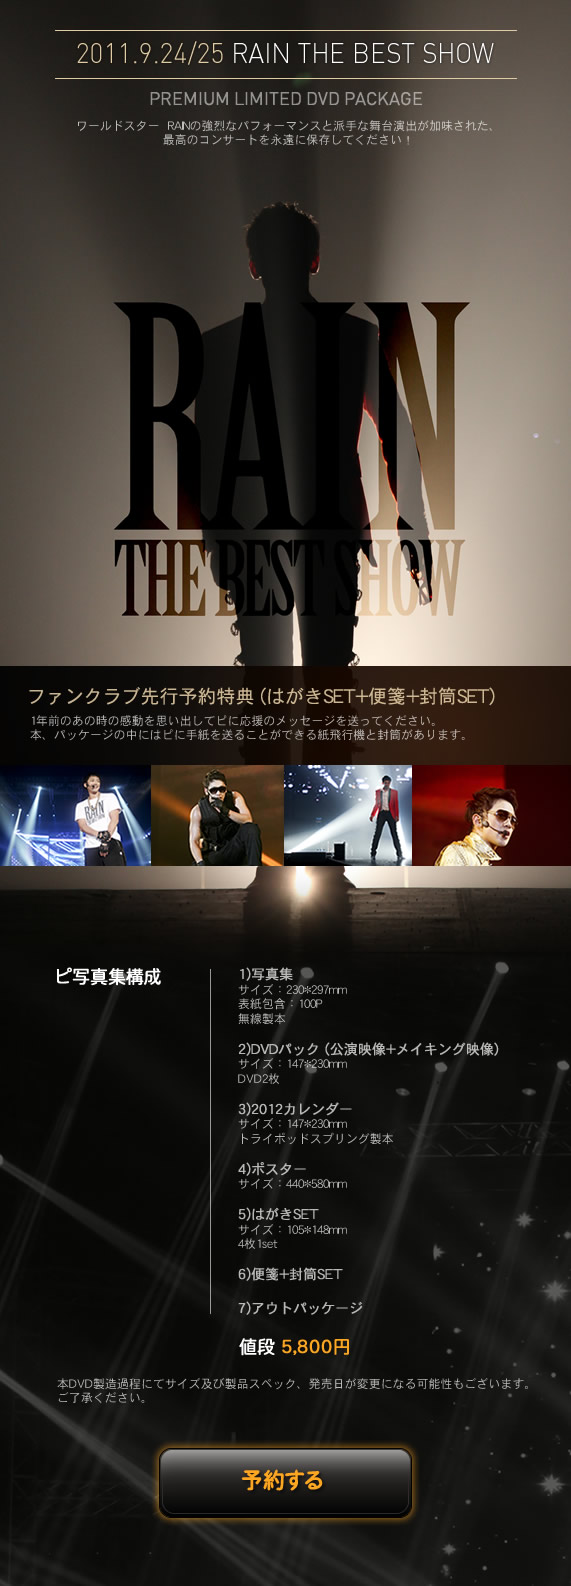 RAIN THE BEST SHOW PREMIUM LIMITED DVD本日予約販売スタート_c0047605_0341217.jpg